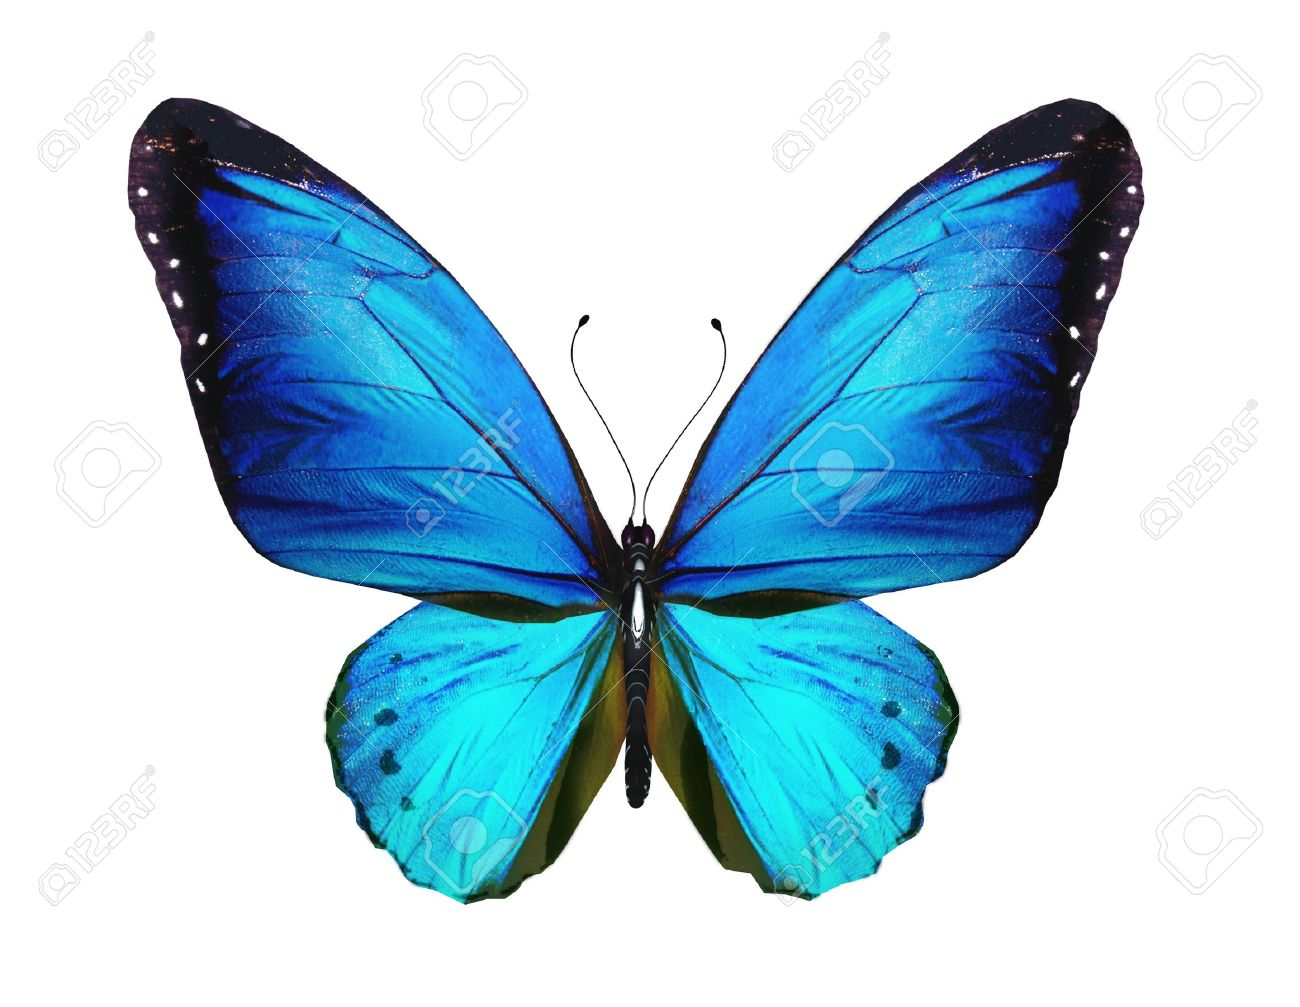 morpho butterfly stock photos royalty free morpho butterfly